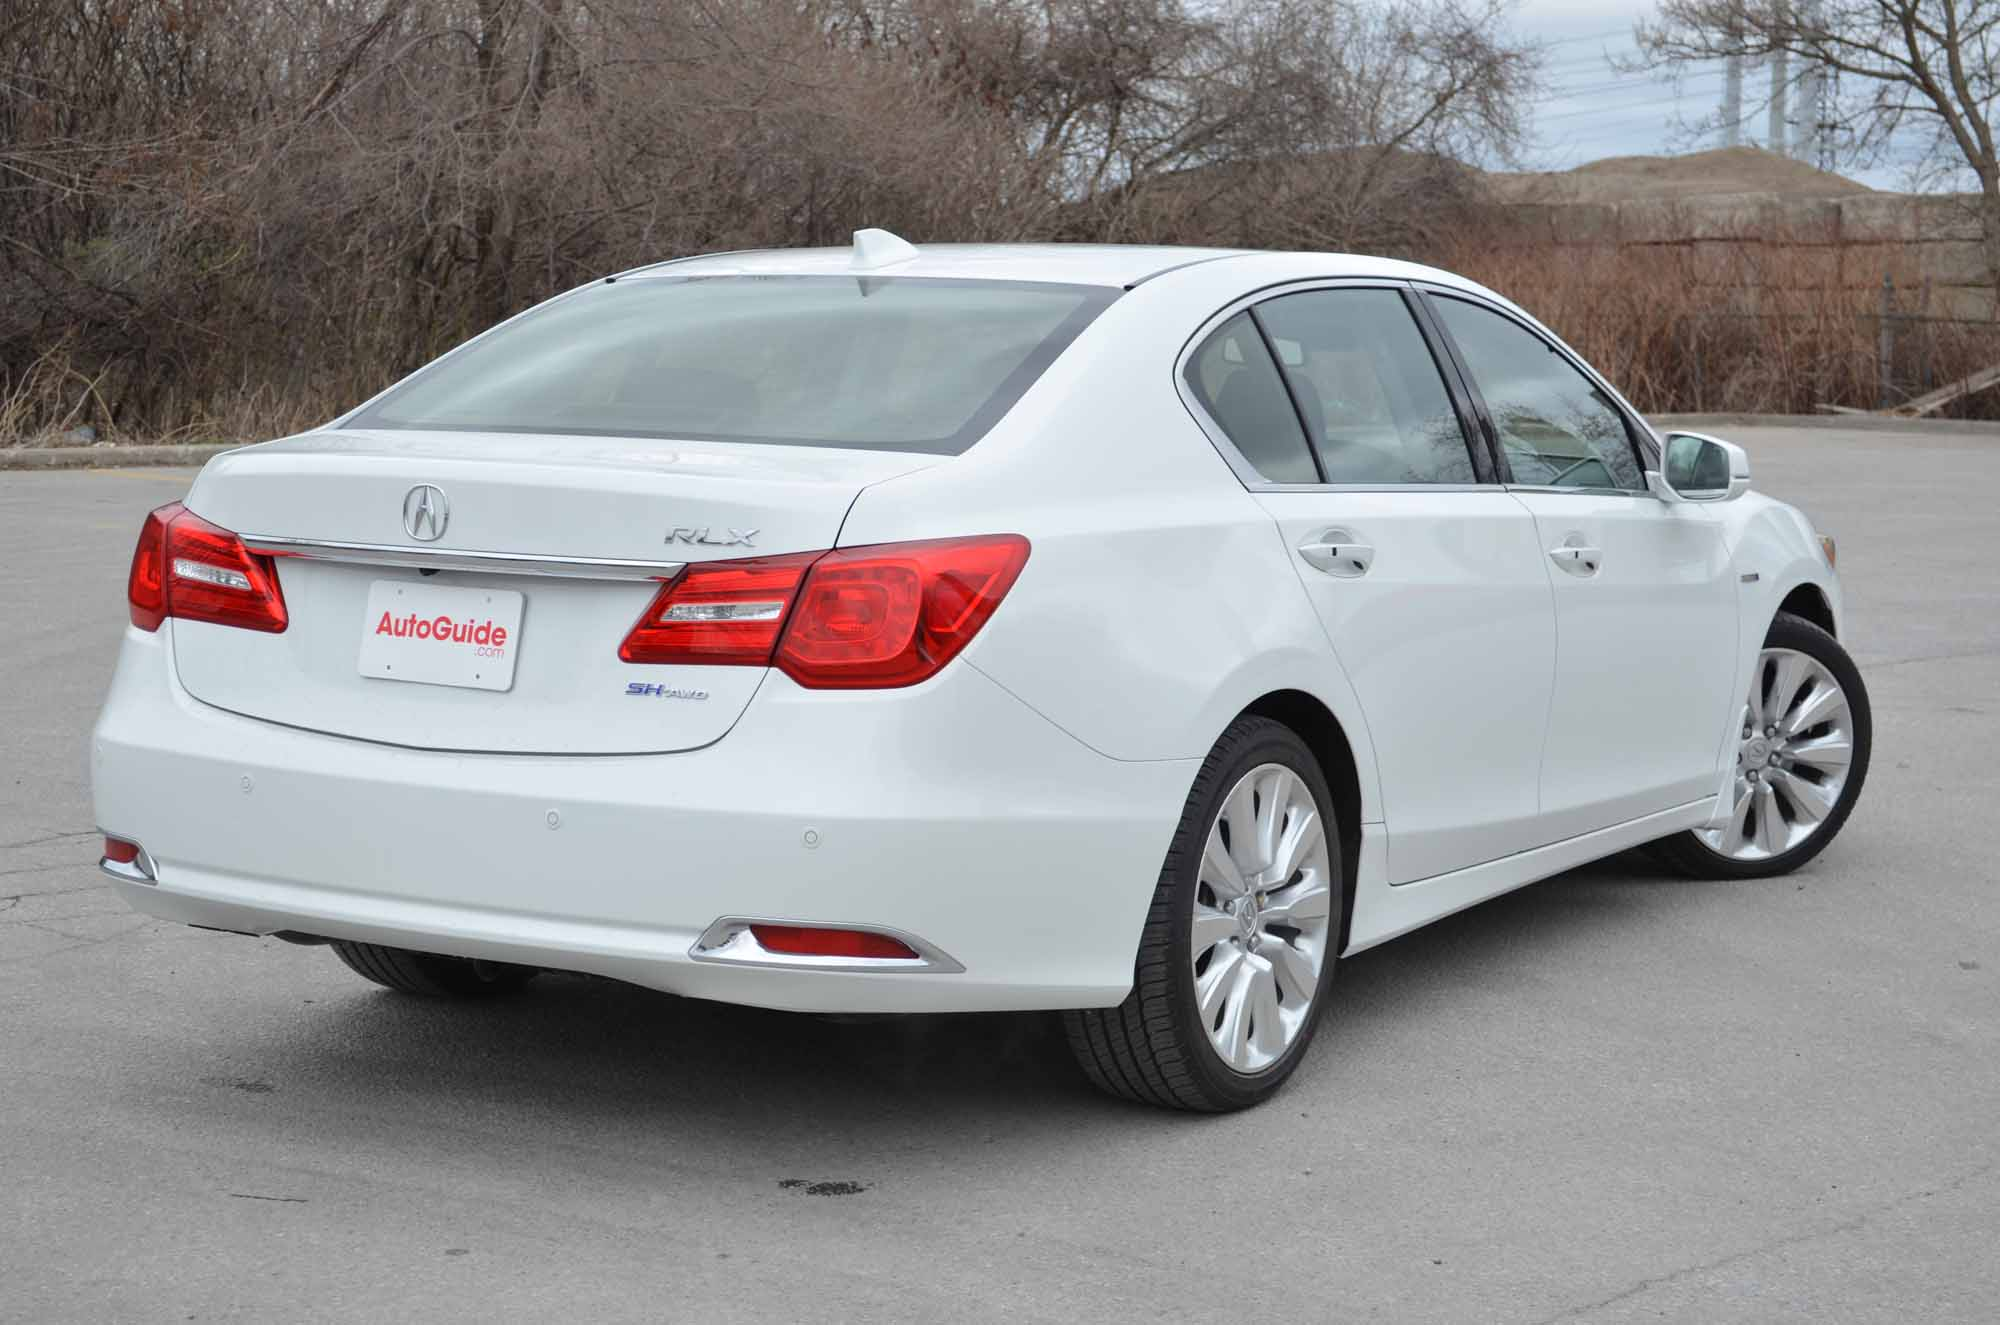 video sport hybrid news on photo goes rlx gallery sedan sale autoevolution june acura